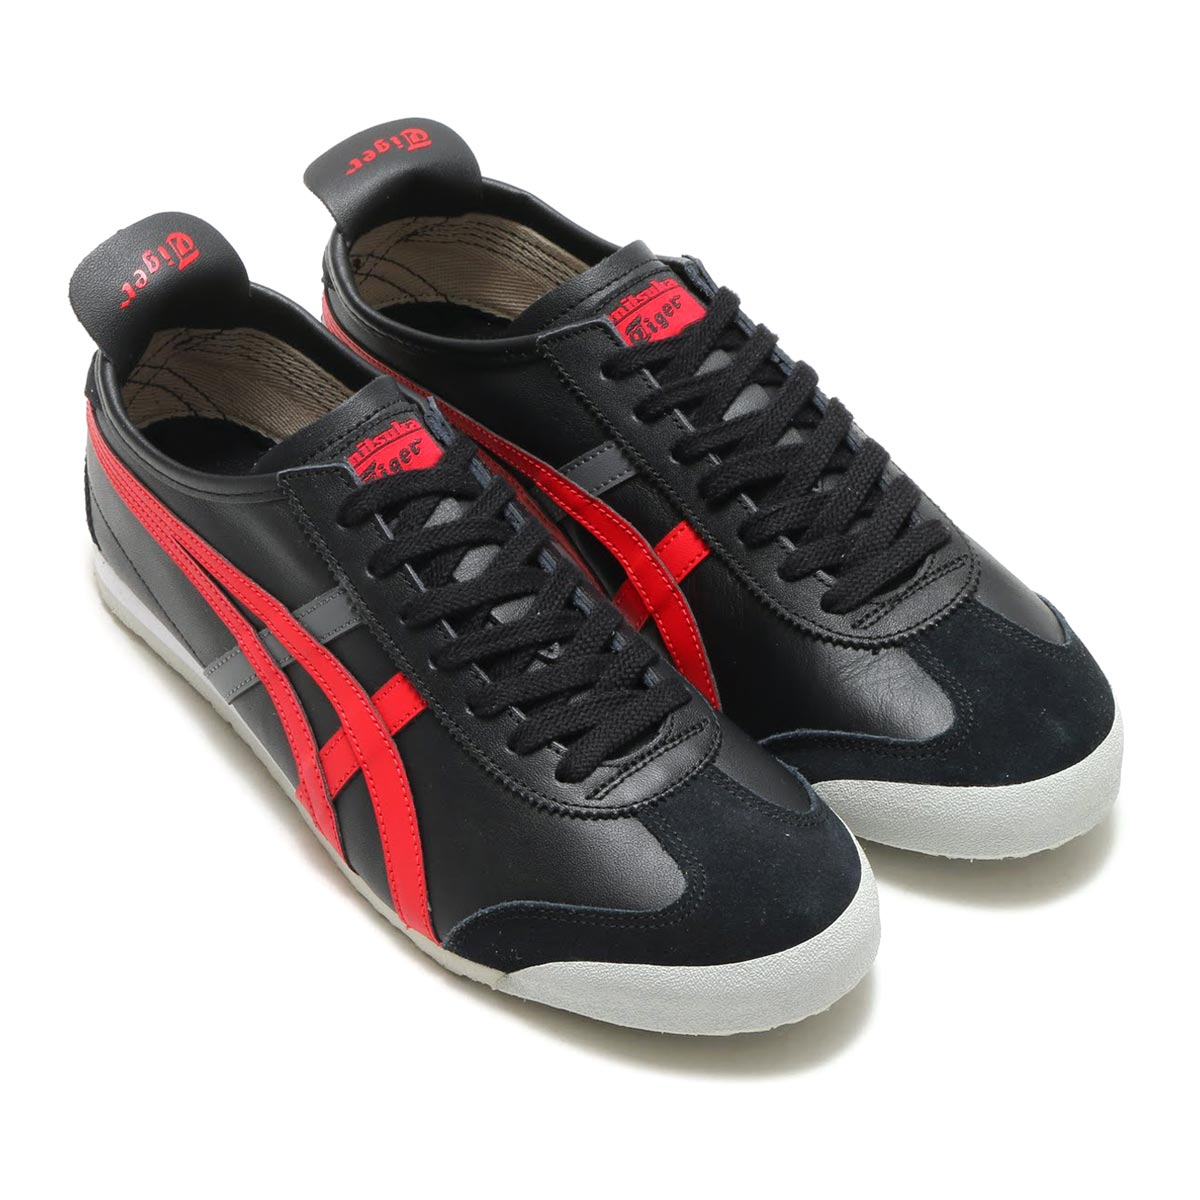 Onitsuka Tiger Black And Red Saleup To 43 Discounts Sepatu Bayi White